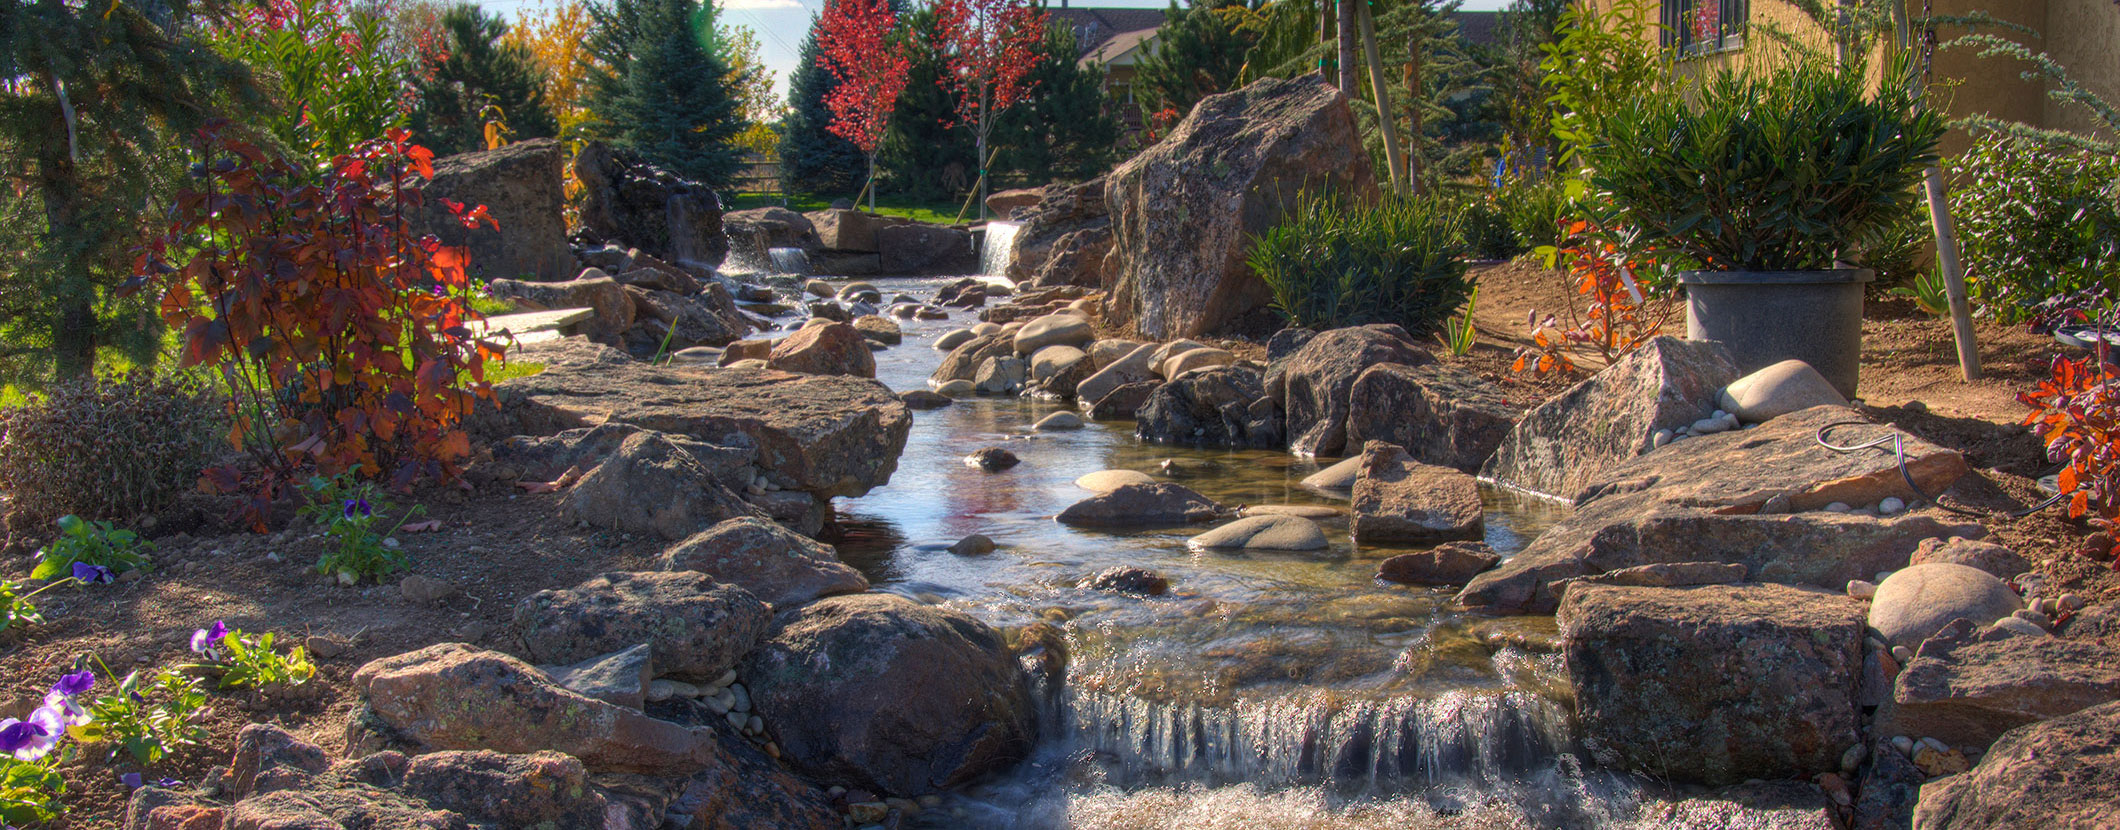 Strickland Stone Water feature with Boulders